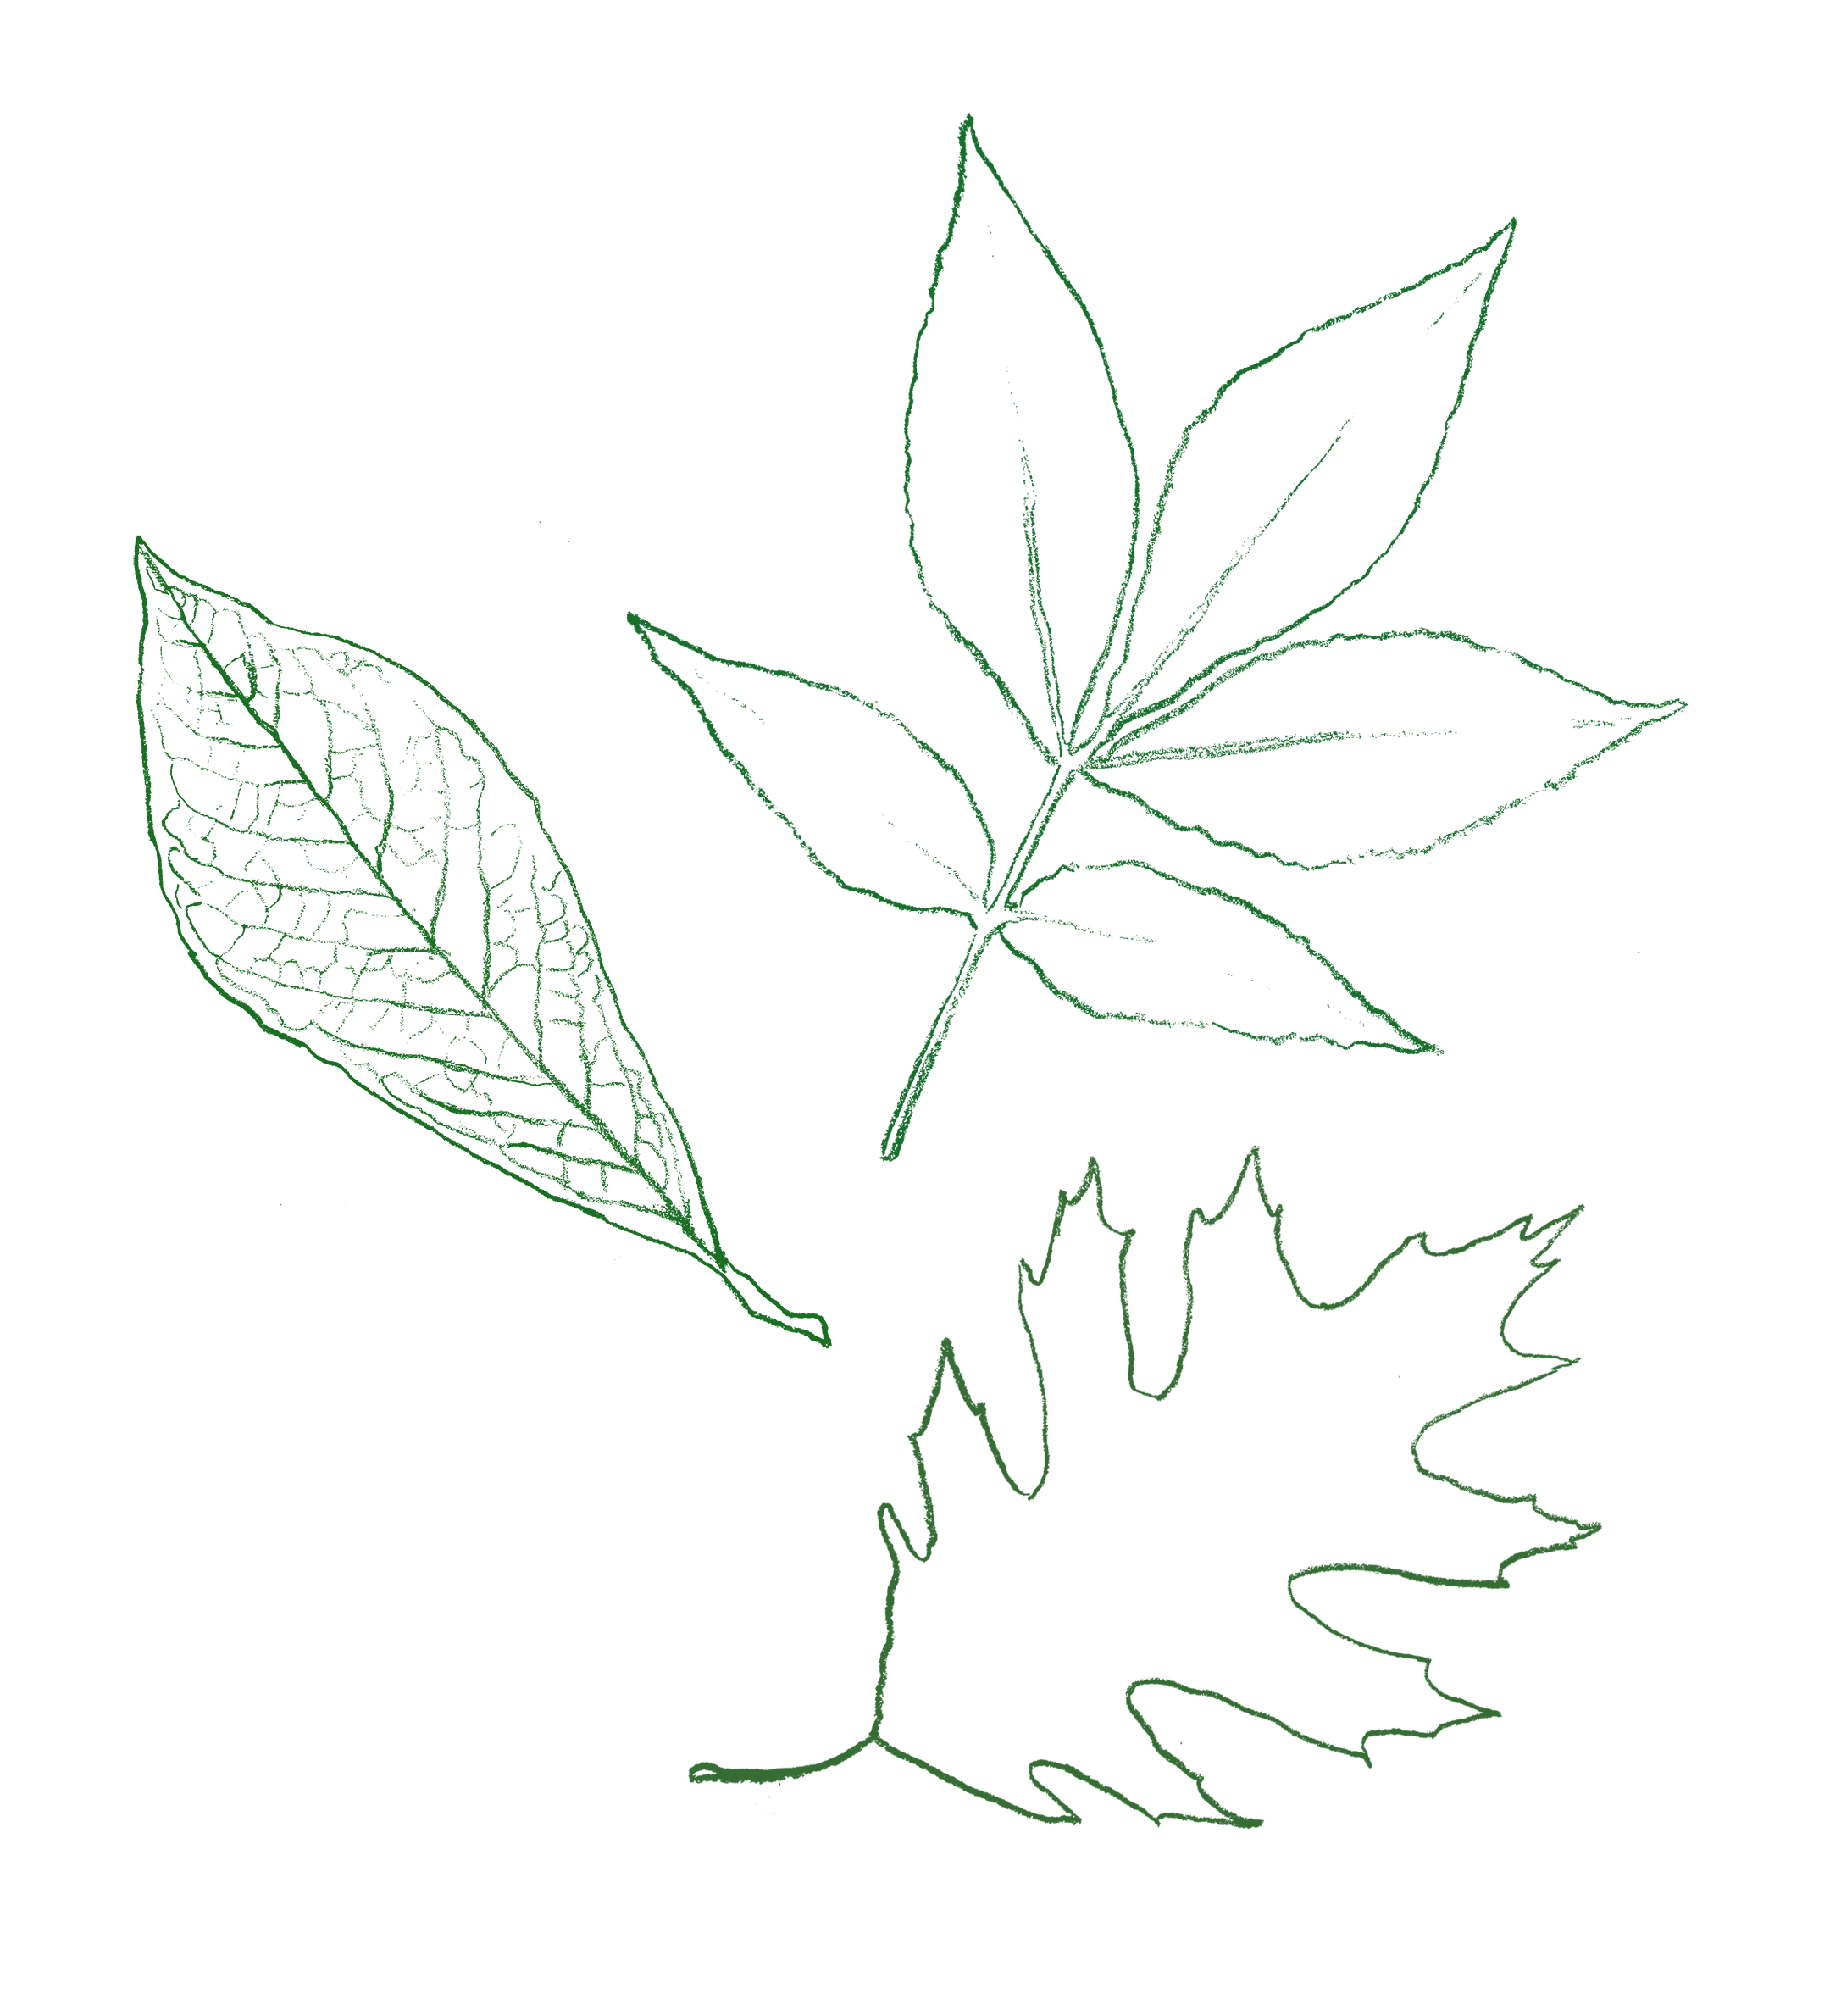 leaves_2.png